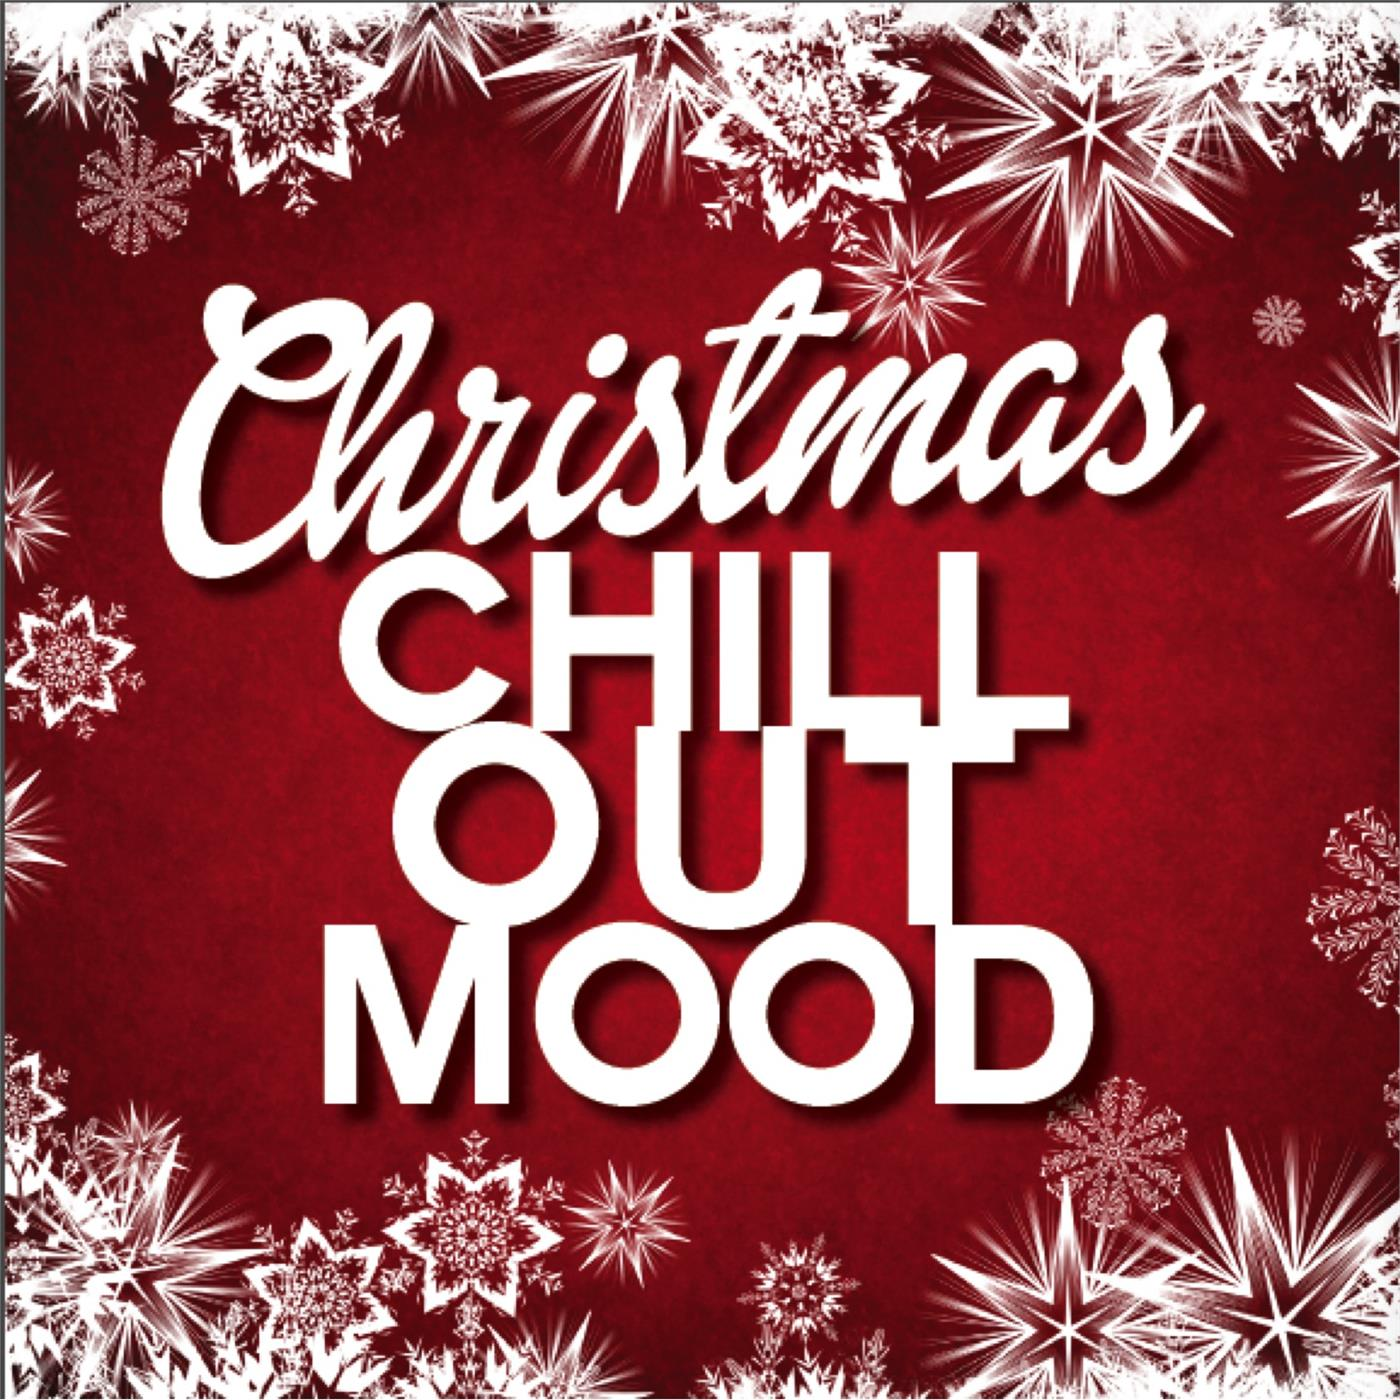 christmas chill out mood - Christmas Chill